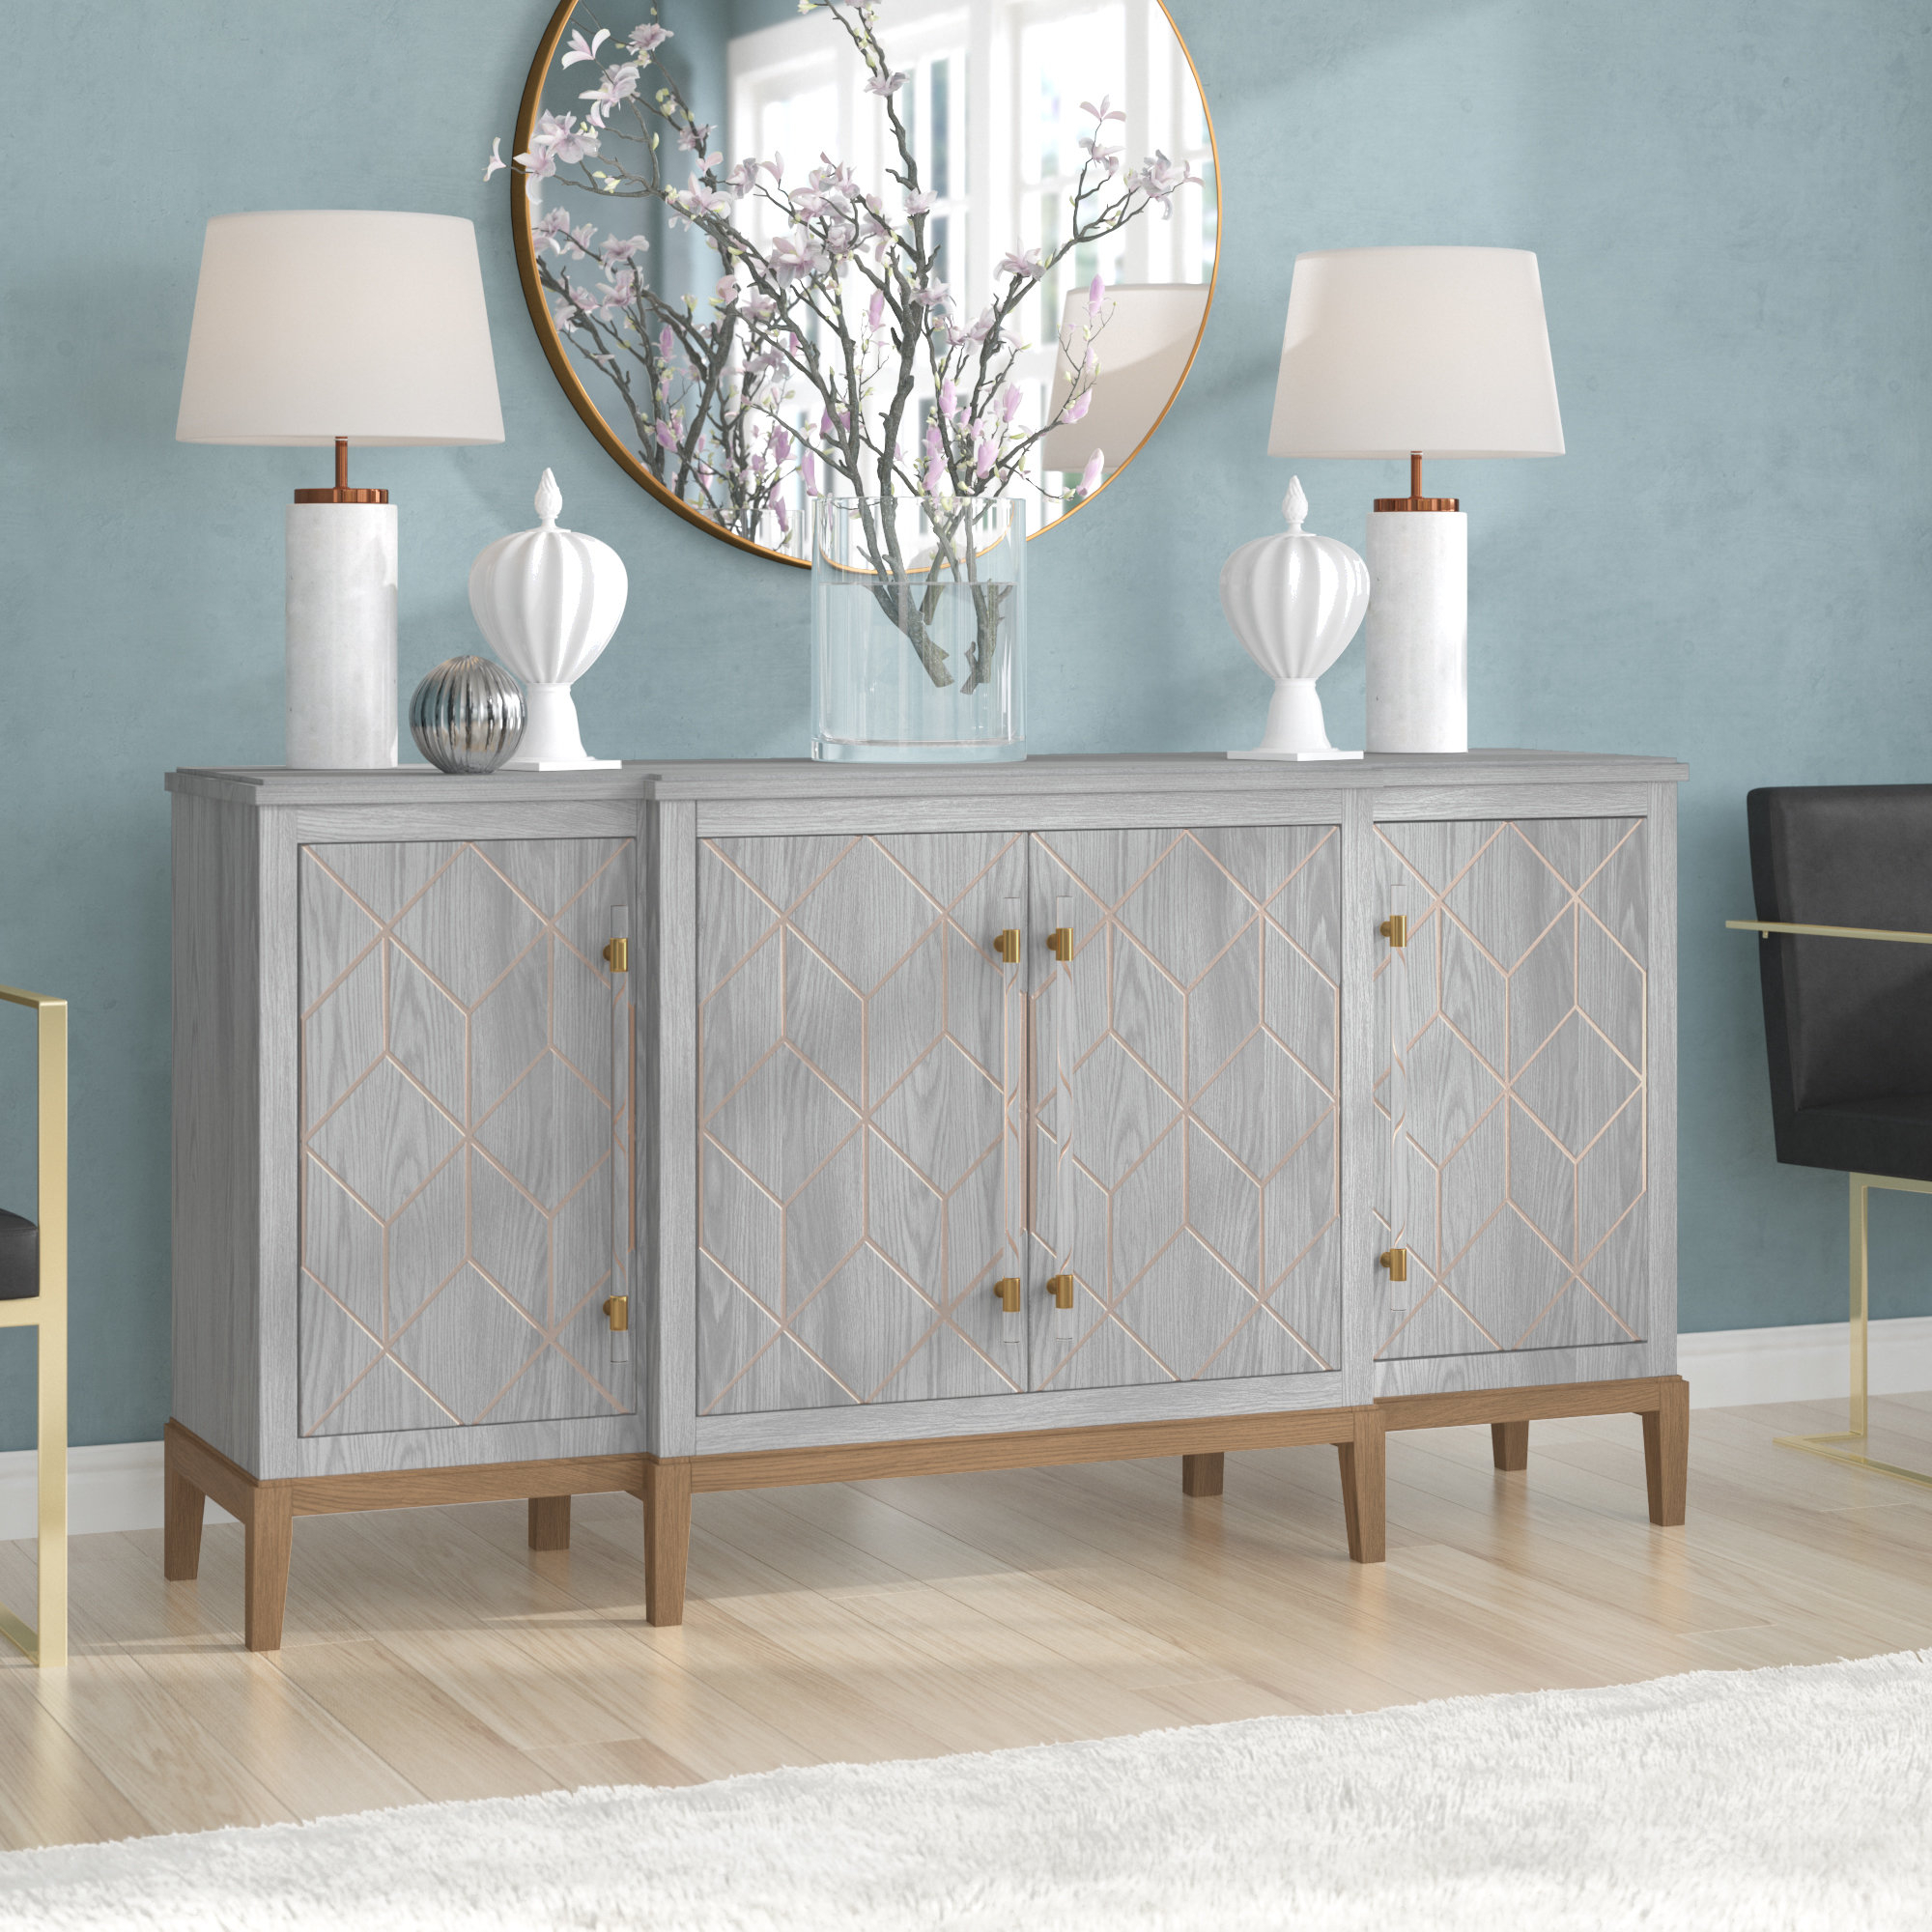 Extra Large Sideboards | Wayfair With Regard To Dillen Sideboards (View 20 of 20)